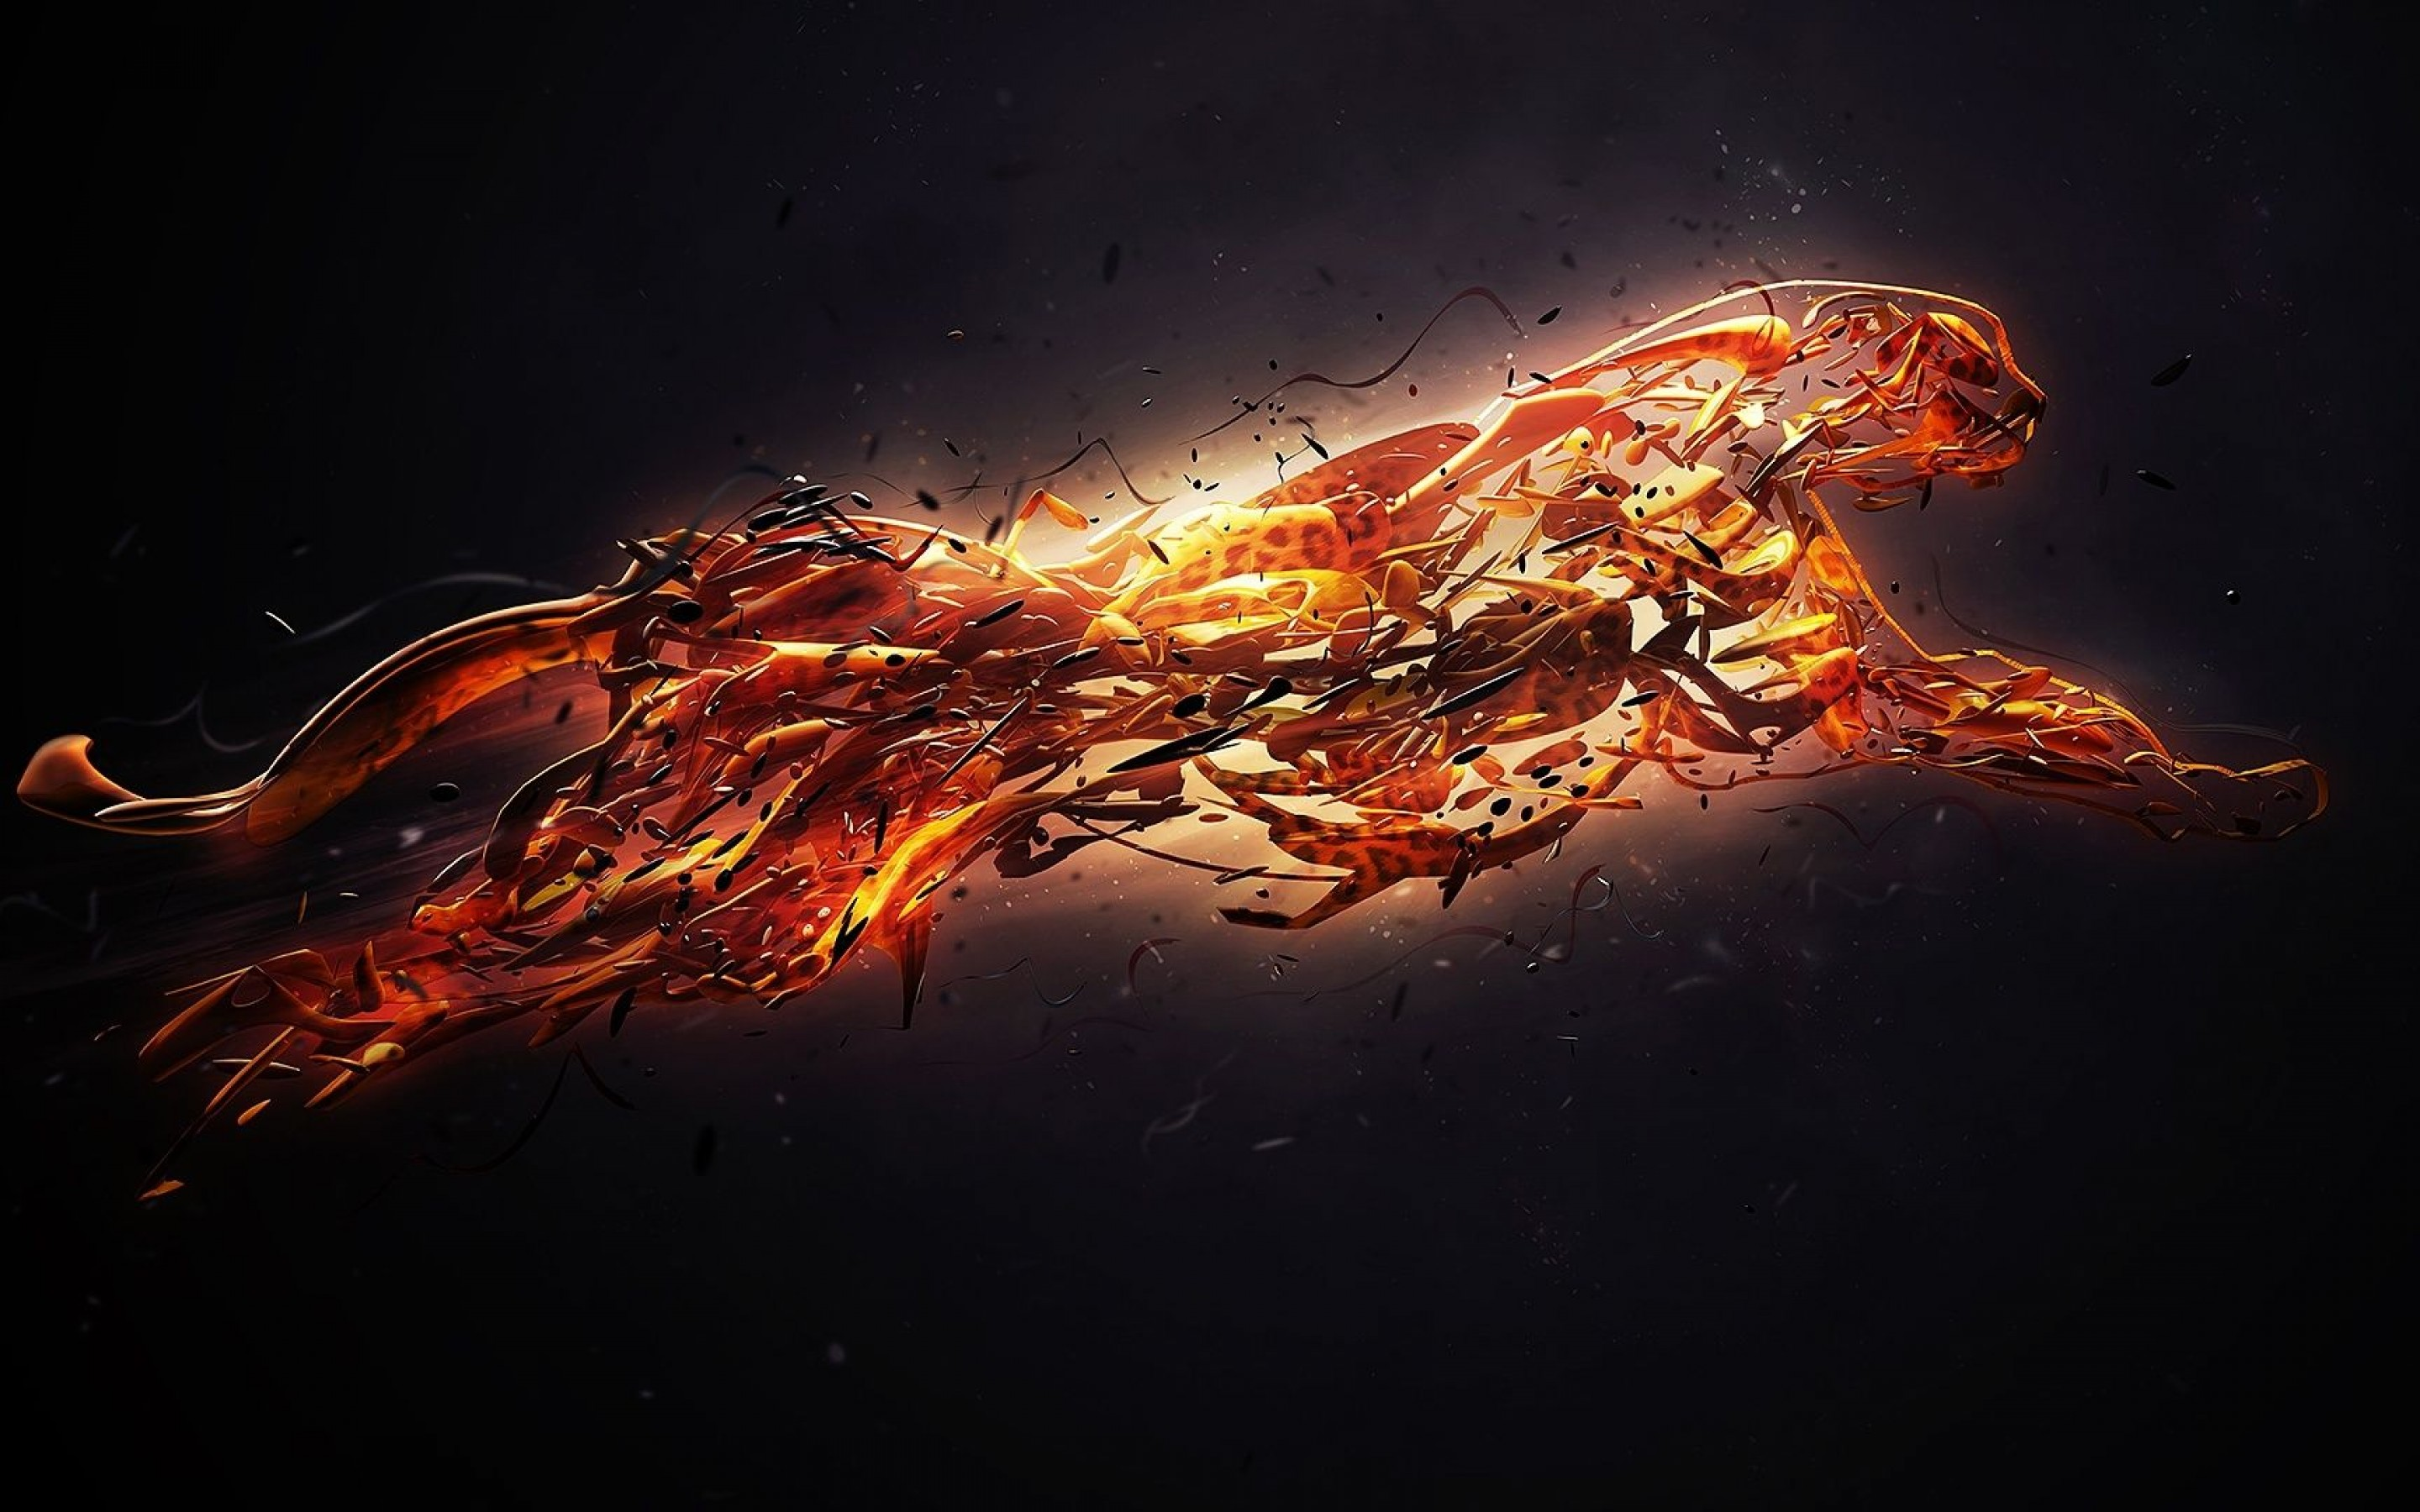 20 Fire Art Wallpapers